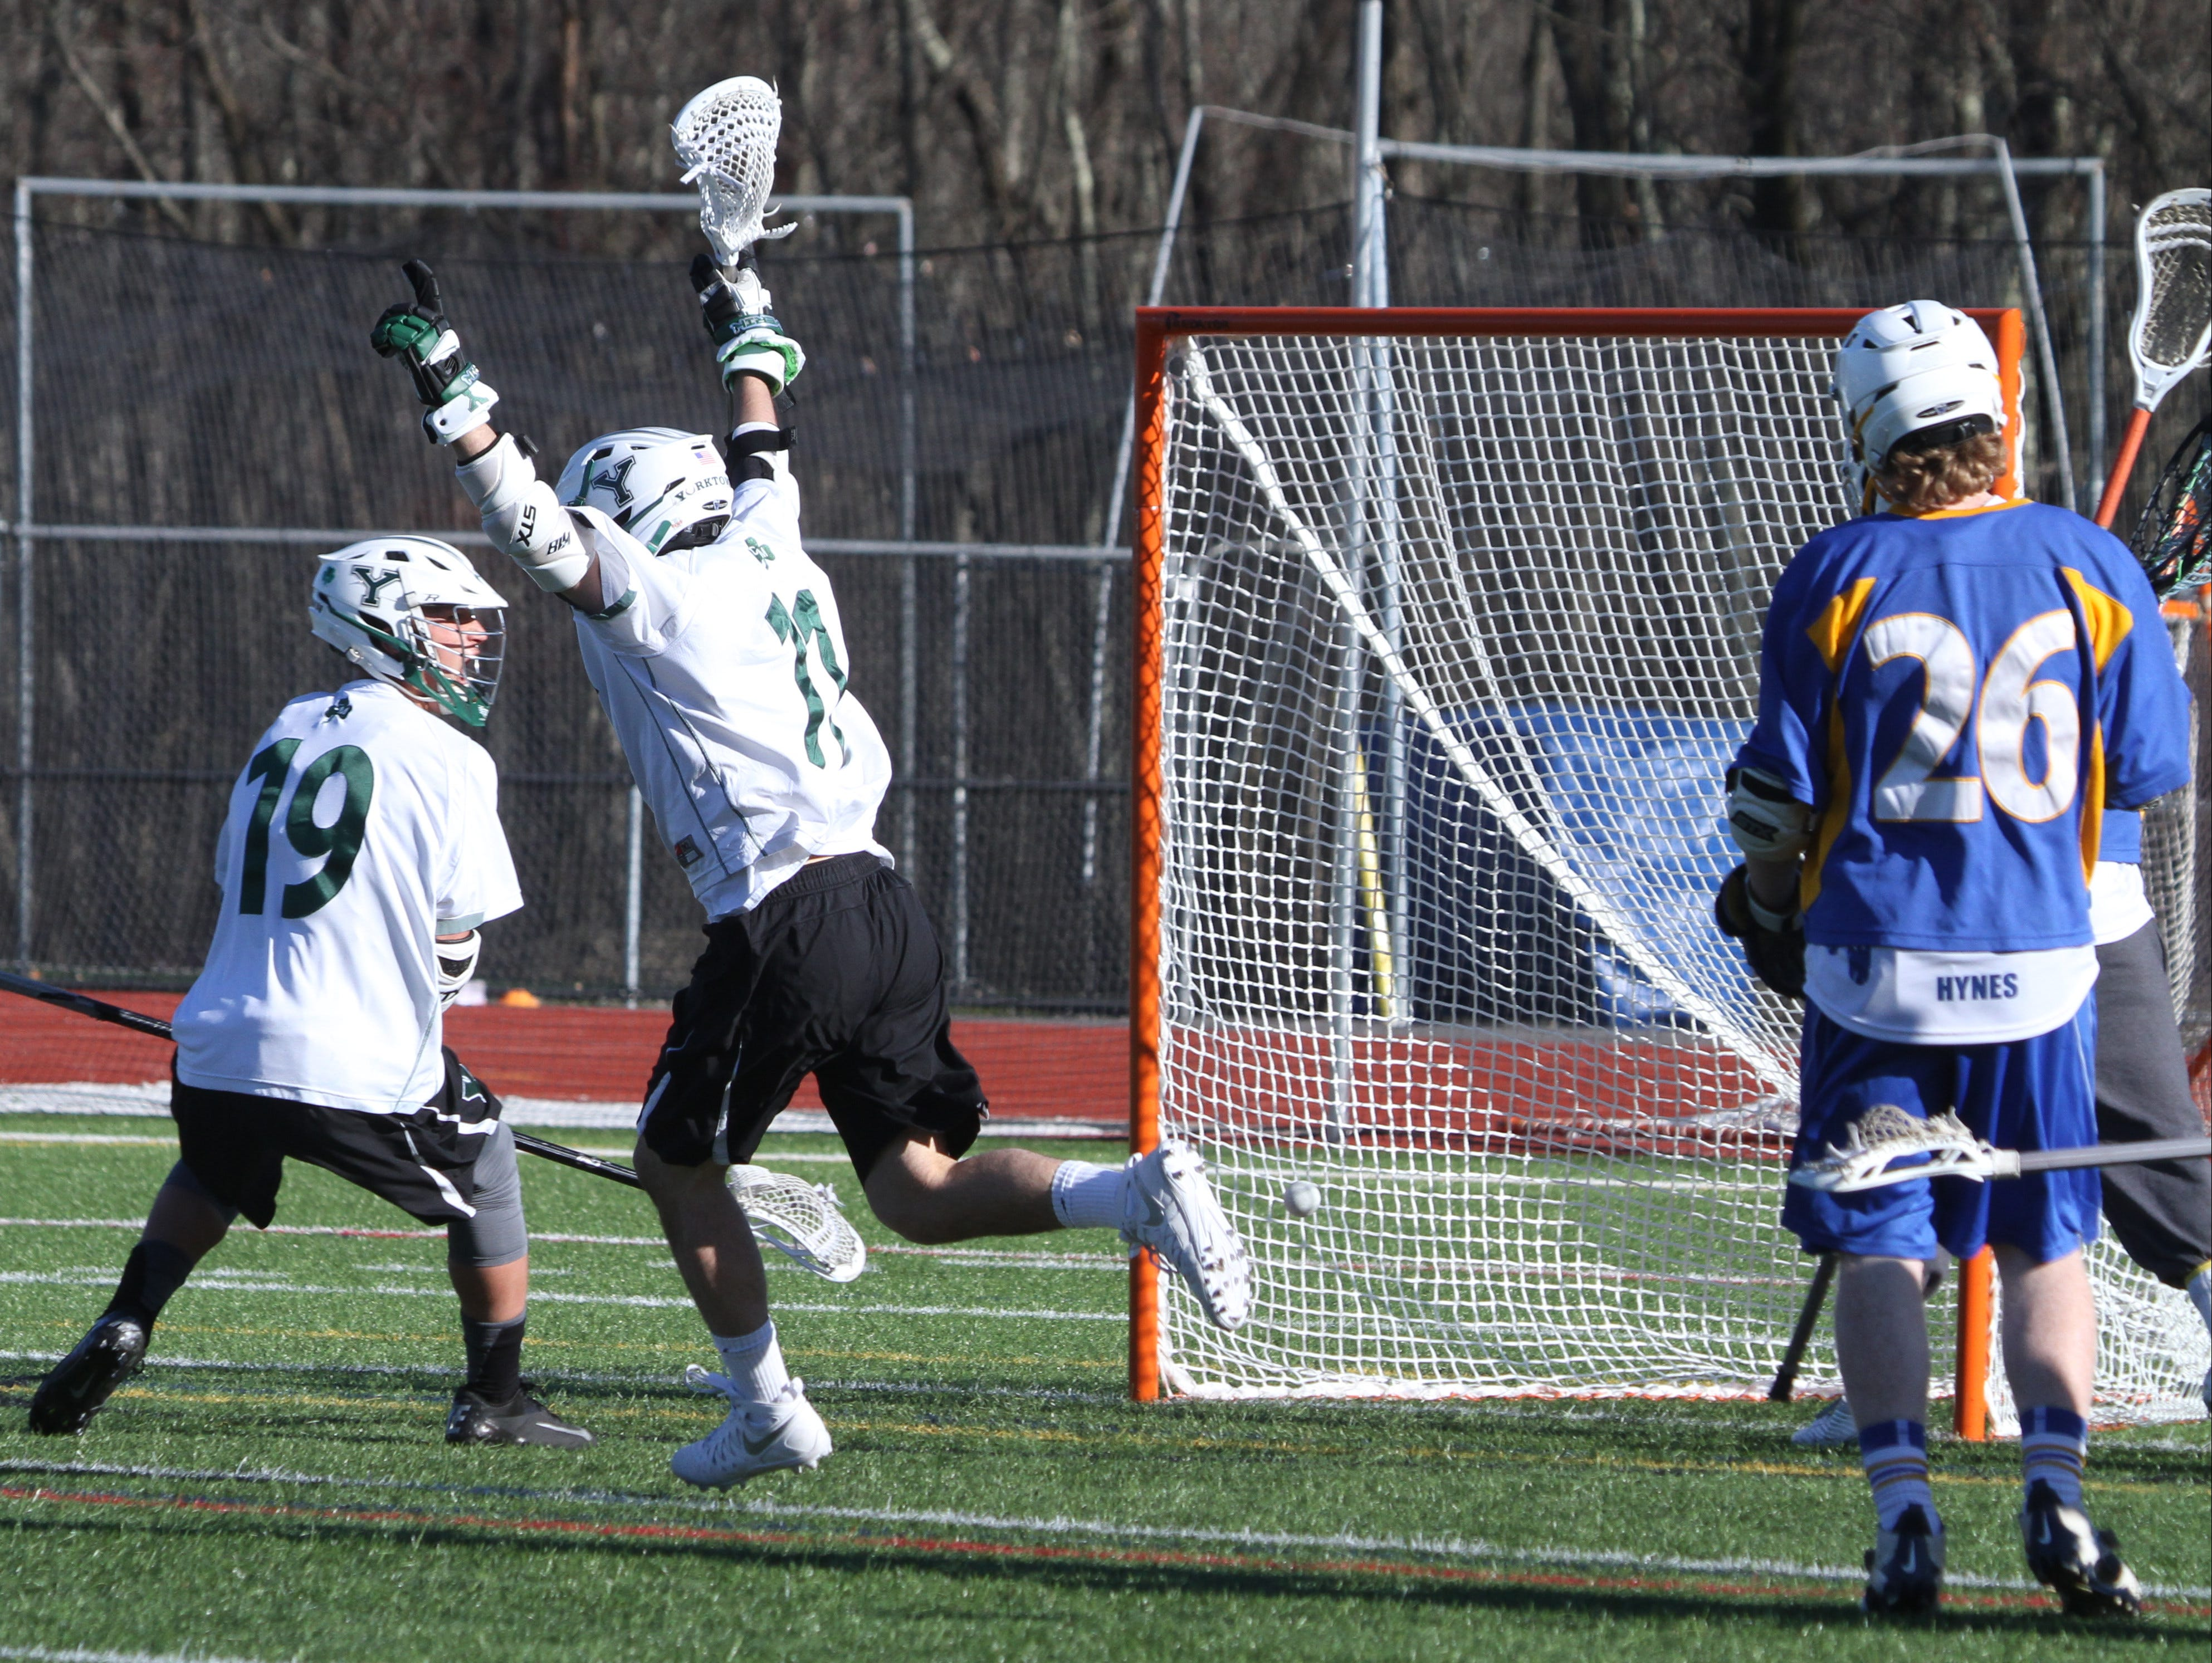 Yorktown defeated Mahopac 15-8 a varsity lacrosse game at Yorktown High School March 29, 2016.